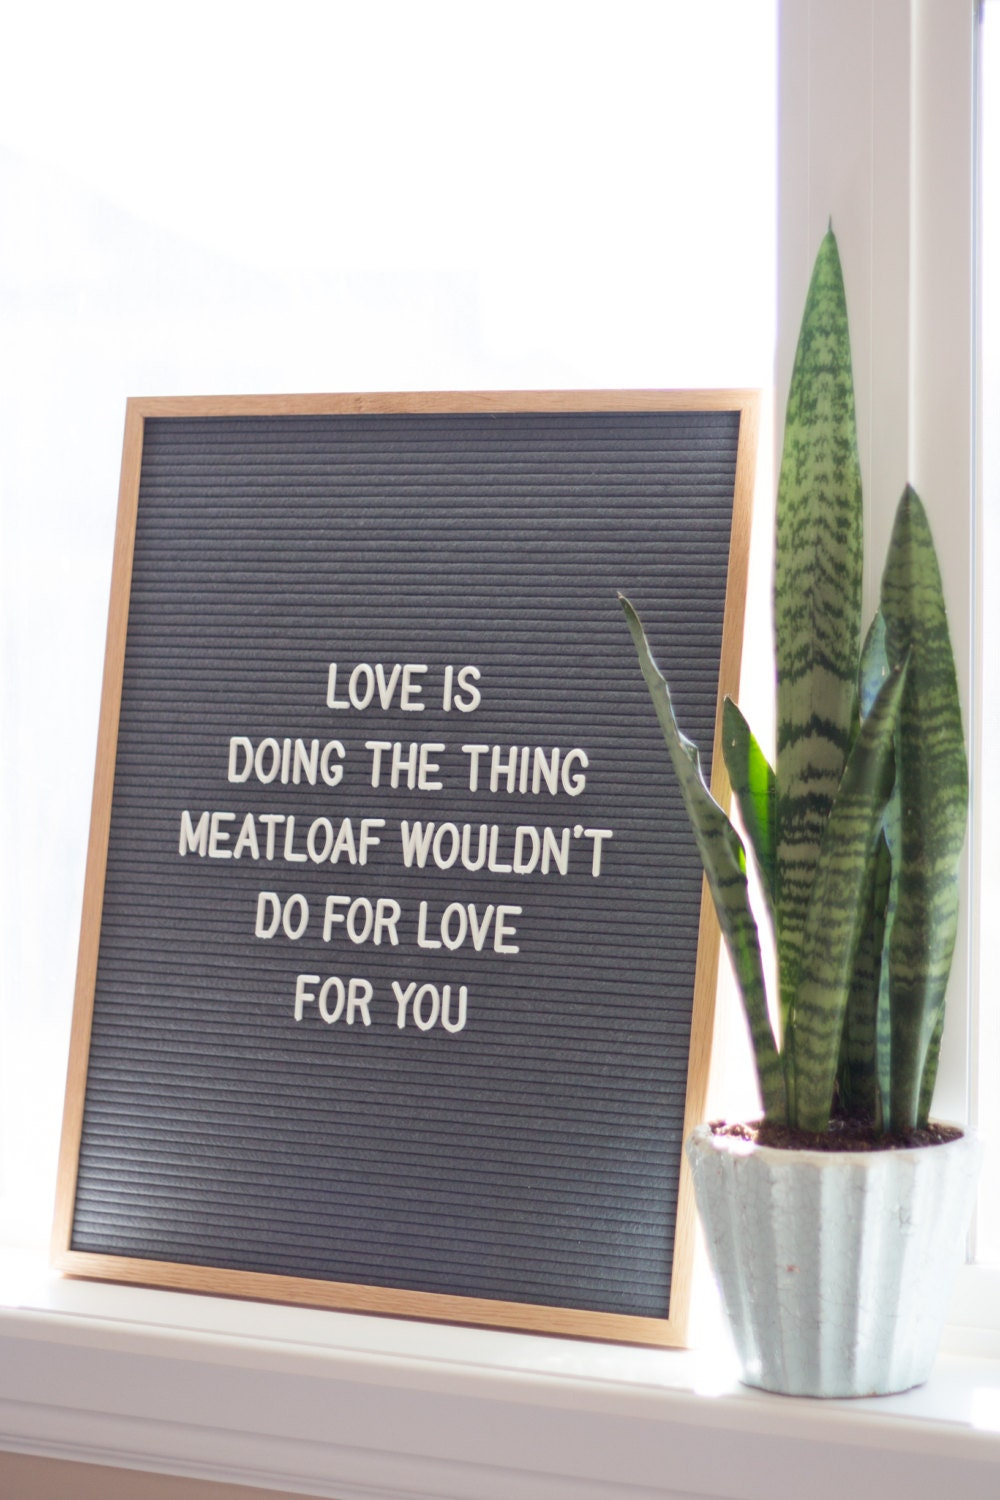 16x20 letter board w 290 characters grey felt by letterfolk. Black Bedroom Furniture Sets. Home Design Ideas